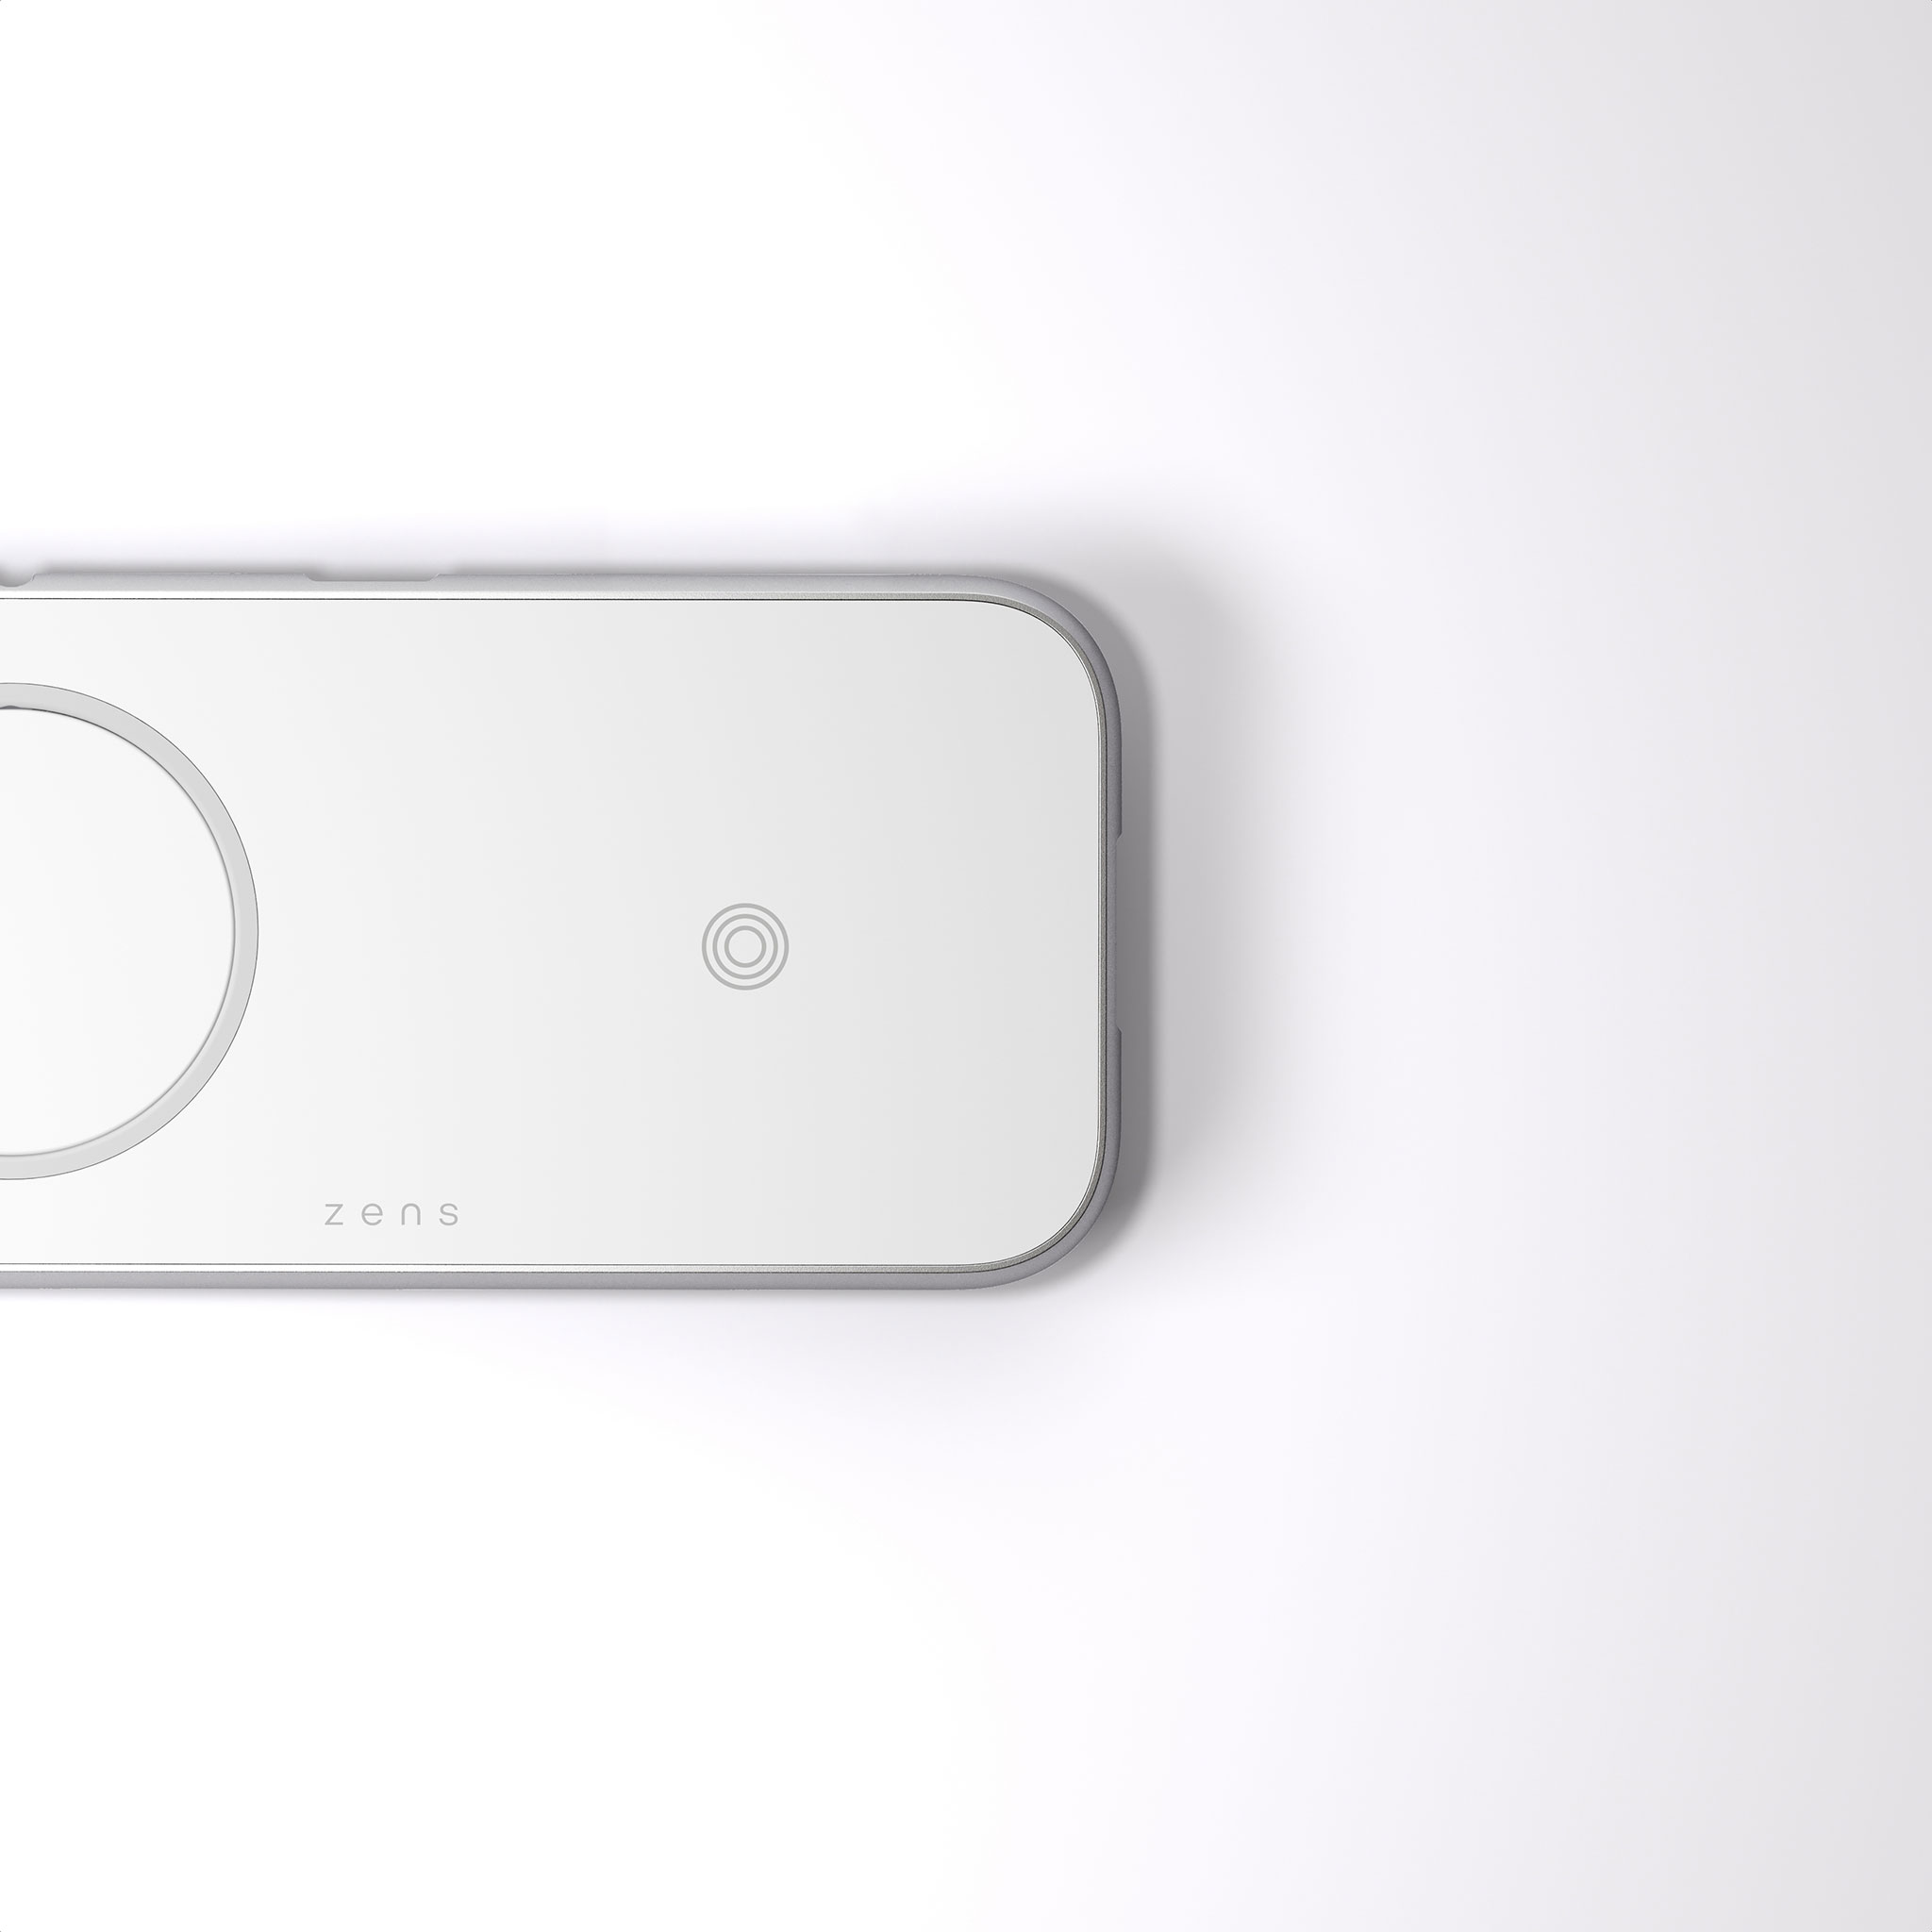 ZEDC16W - Zens 3 in 1 MagSafe Wireless Charger Detail